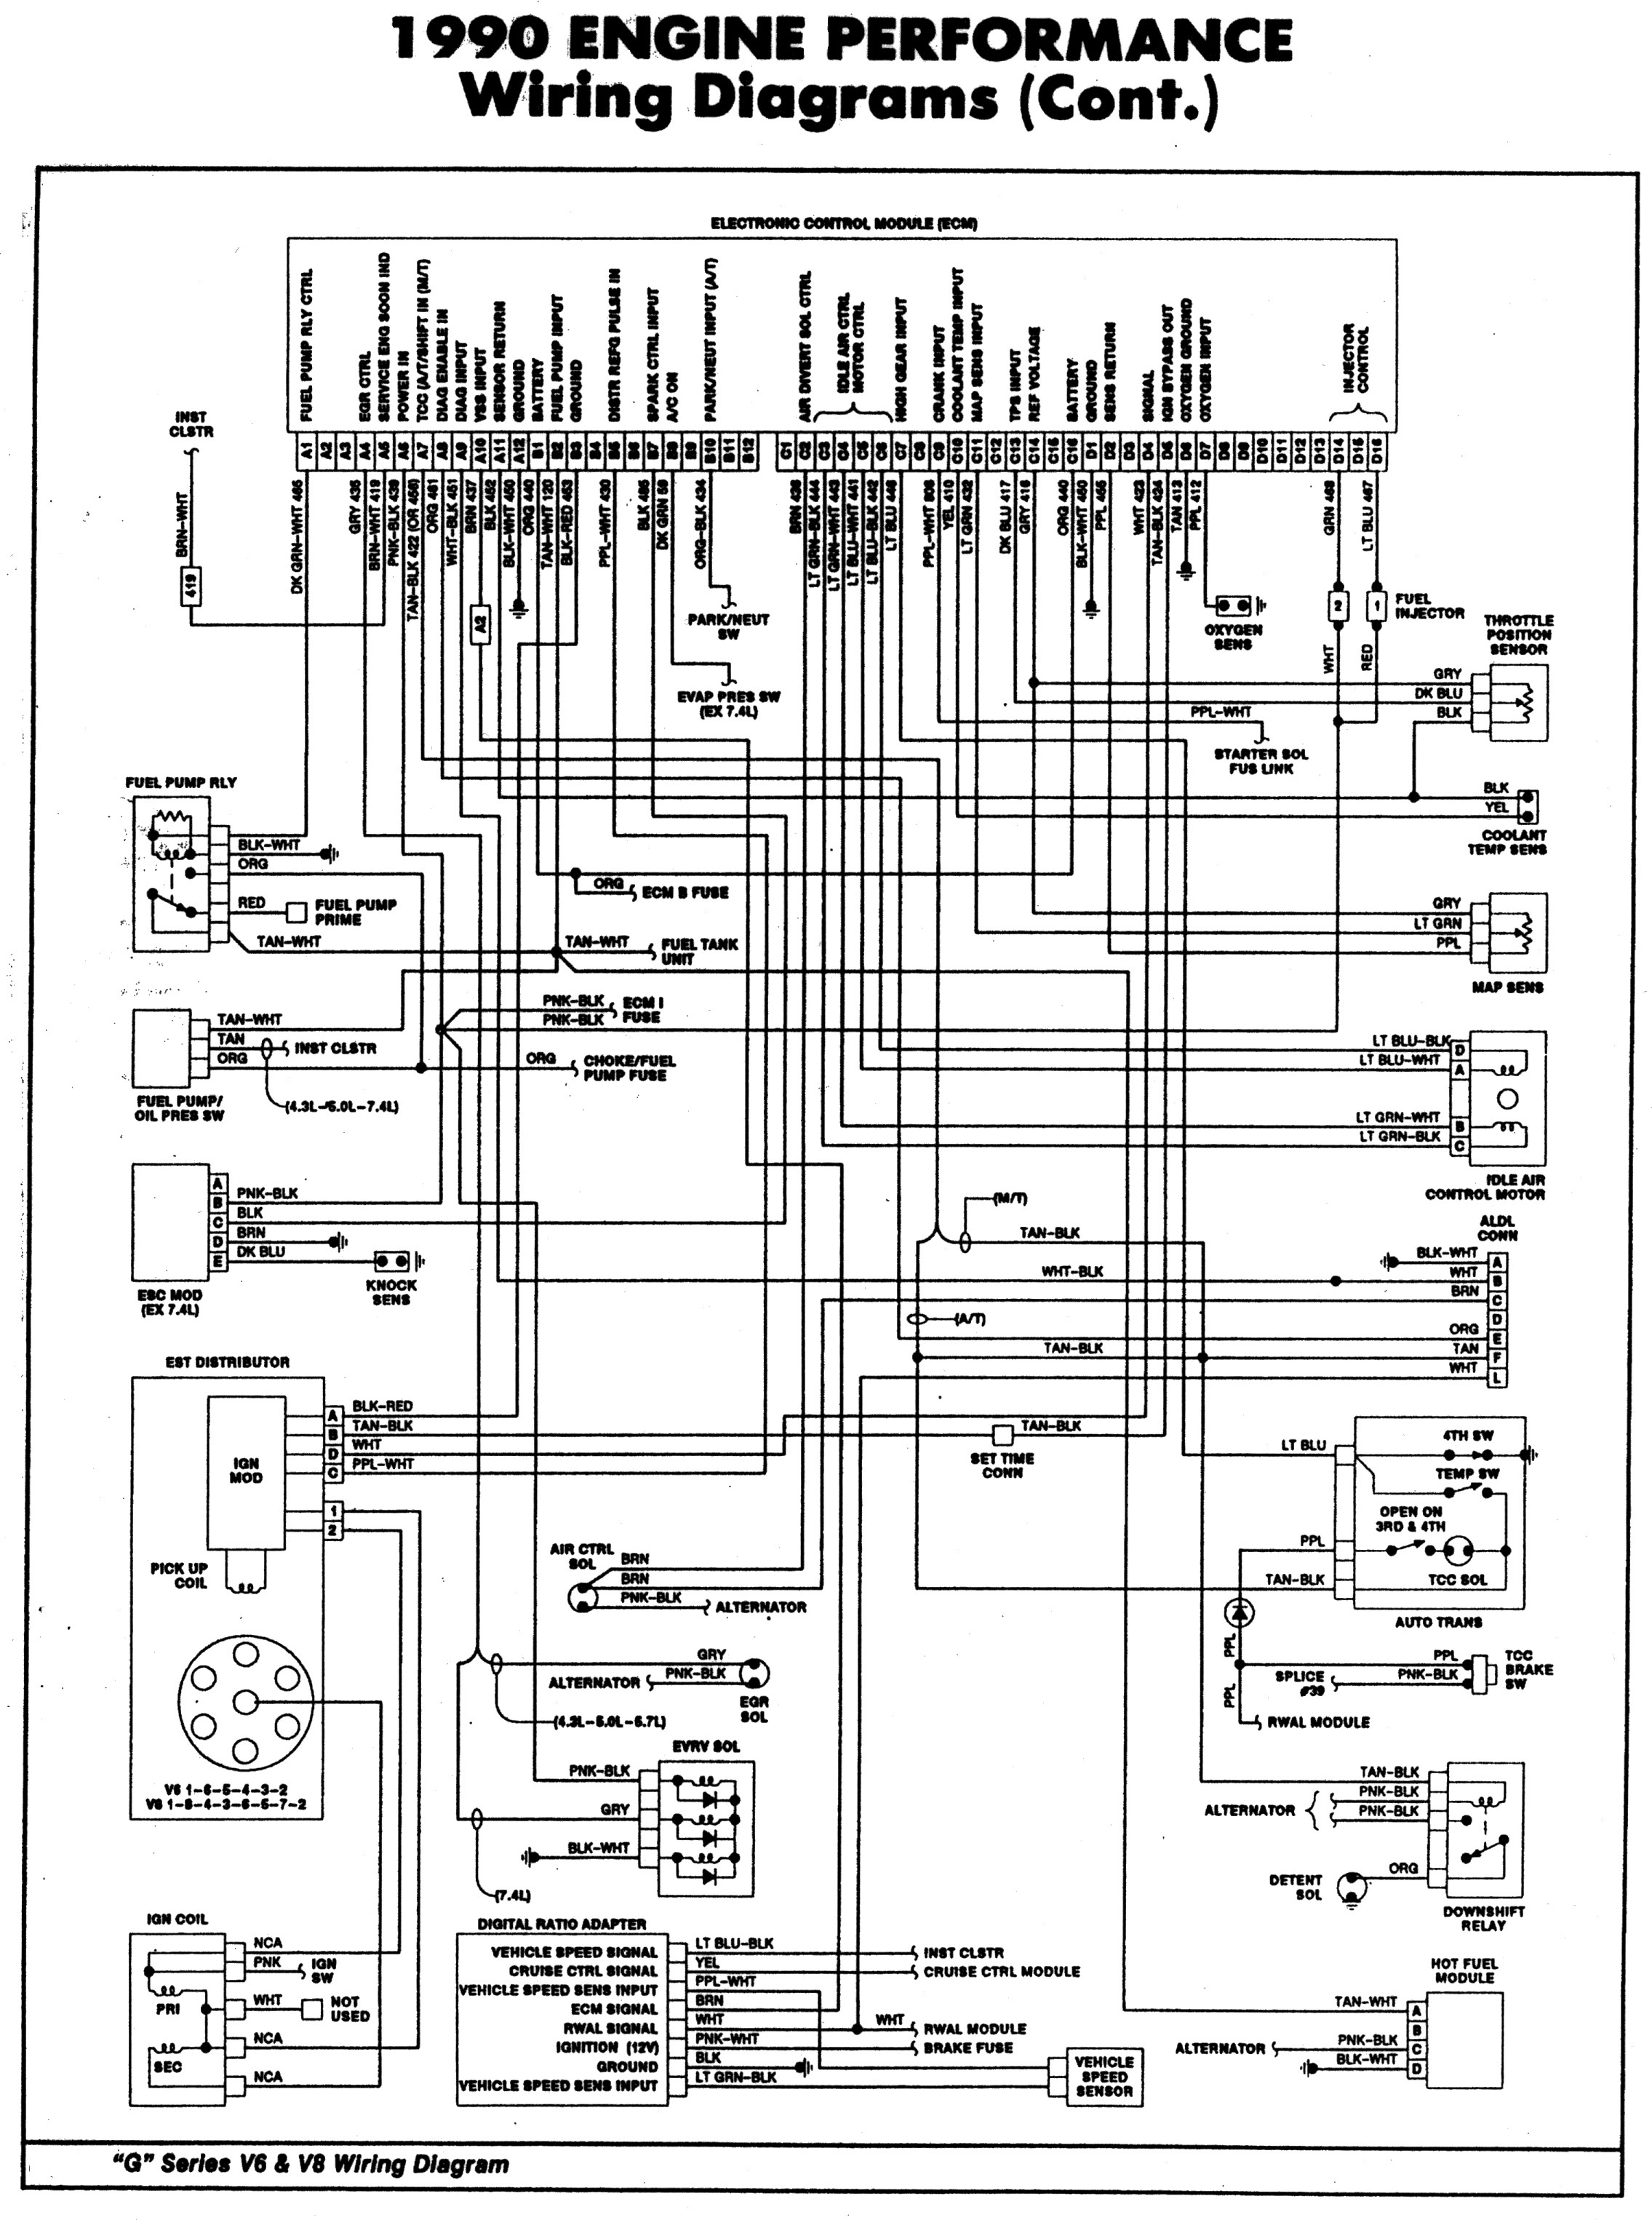 hight resolution of 91 lumina wiring diagram wiring diagram yer 91 chevy suburban wiring diagram 91 lumina wiring diagram